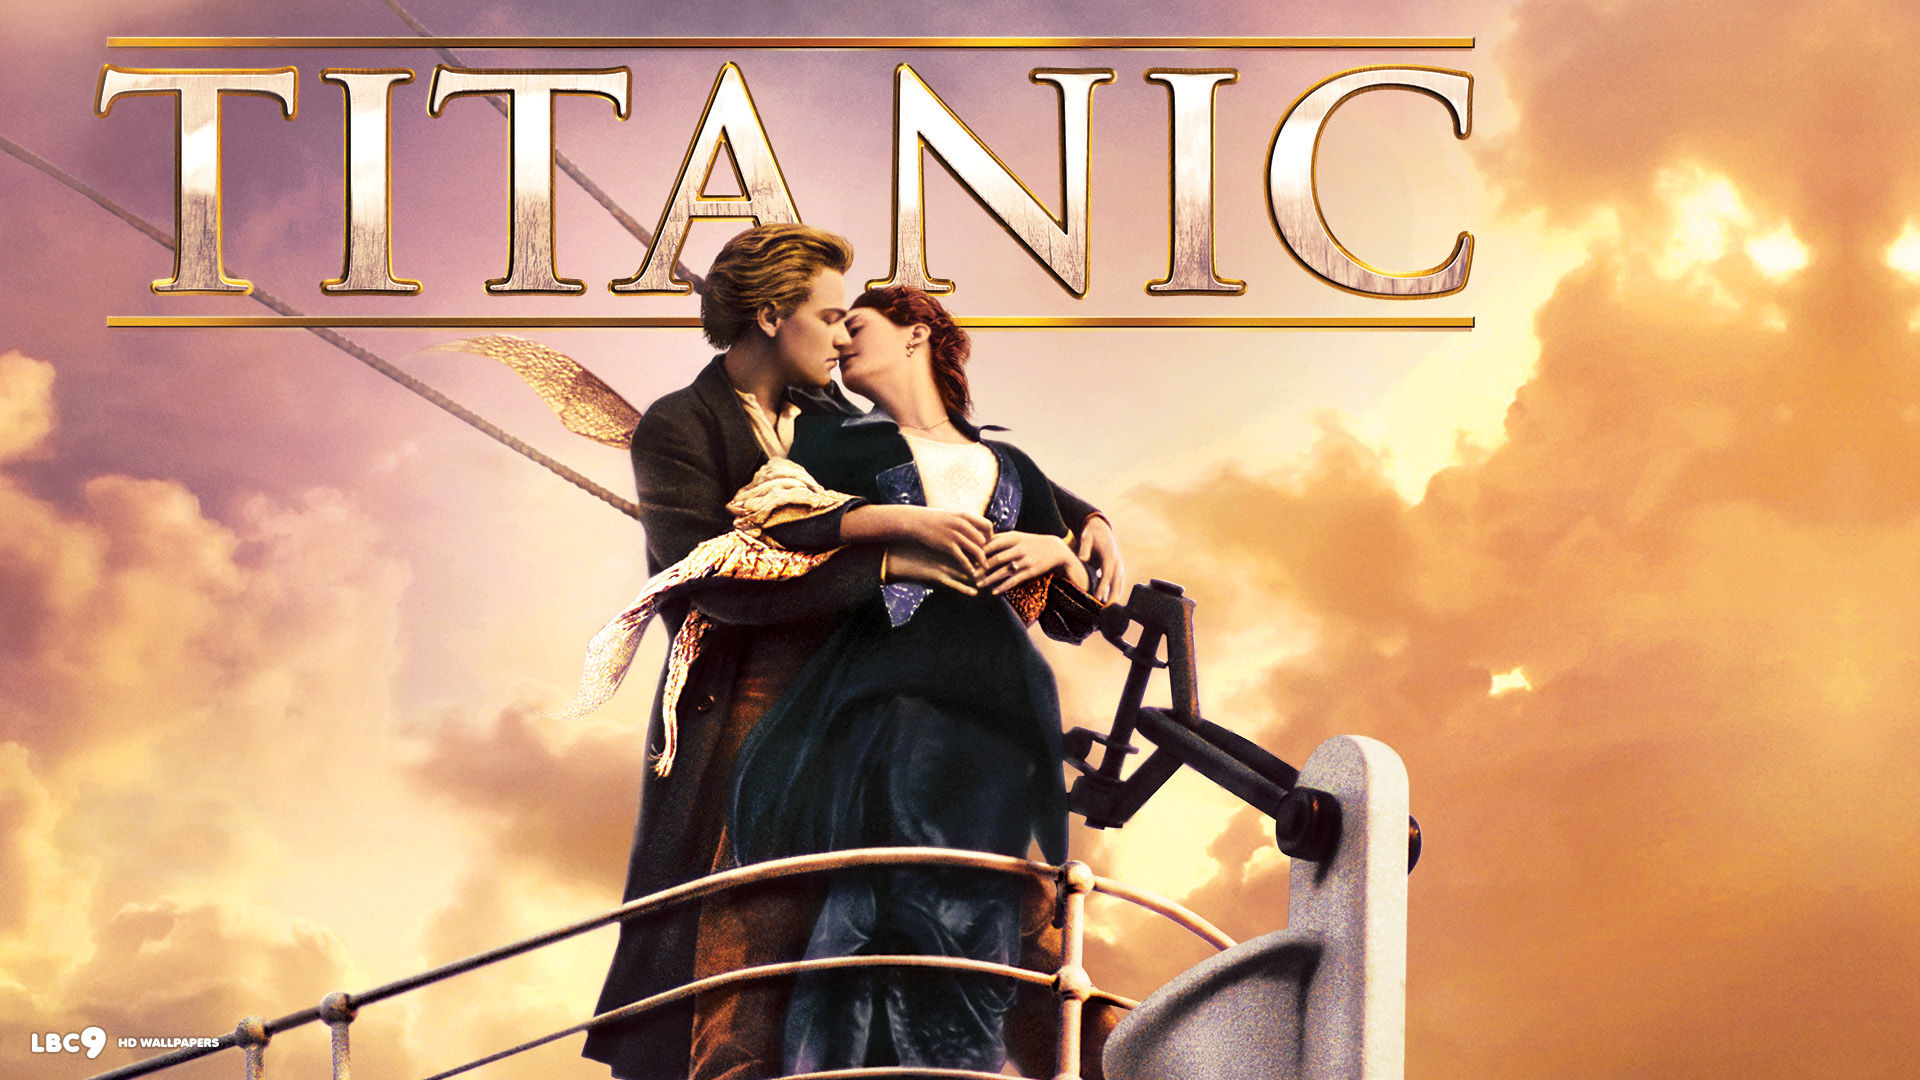 TITANIc disaster drama romance ship boat mood poster d wallpaper 1920x1080 202810 WallpaperUP